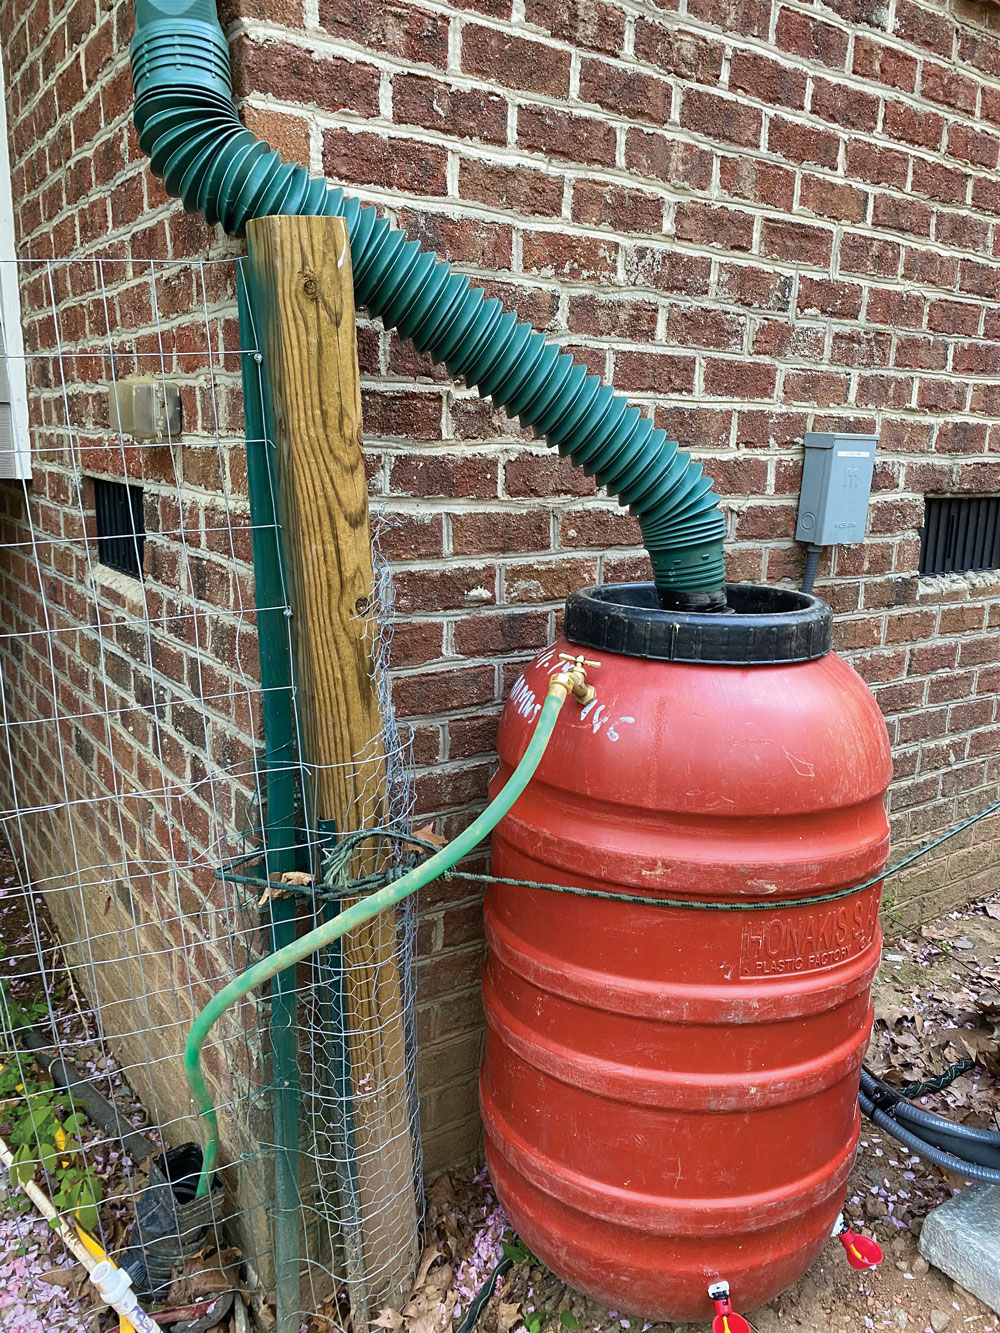 This installation shows a long, flexible downspout adapter